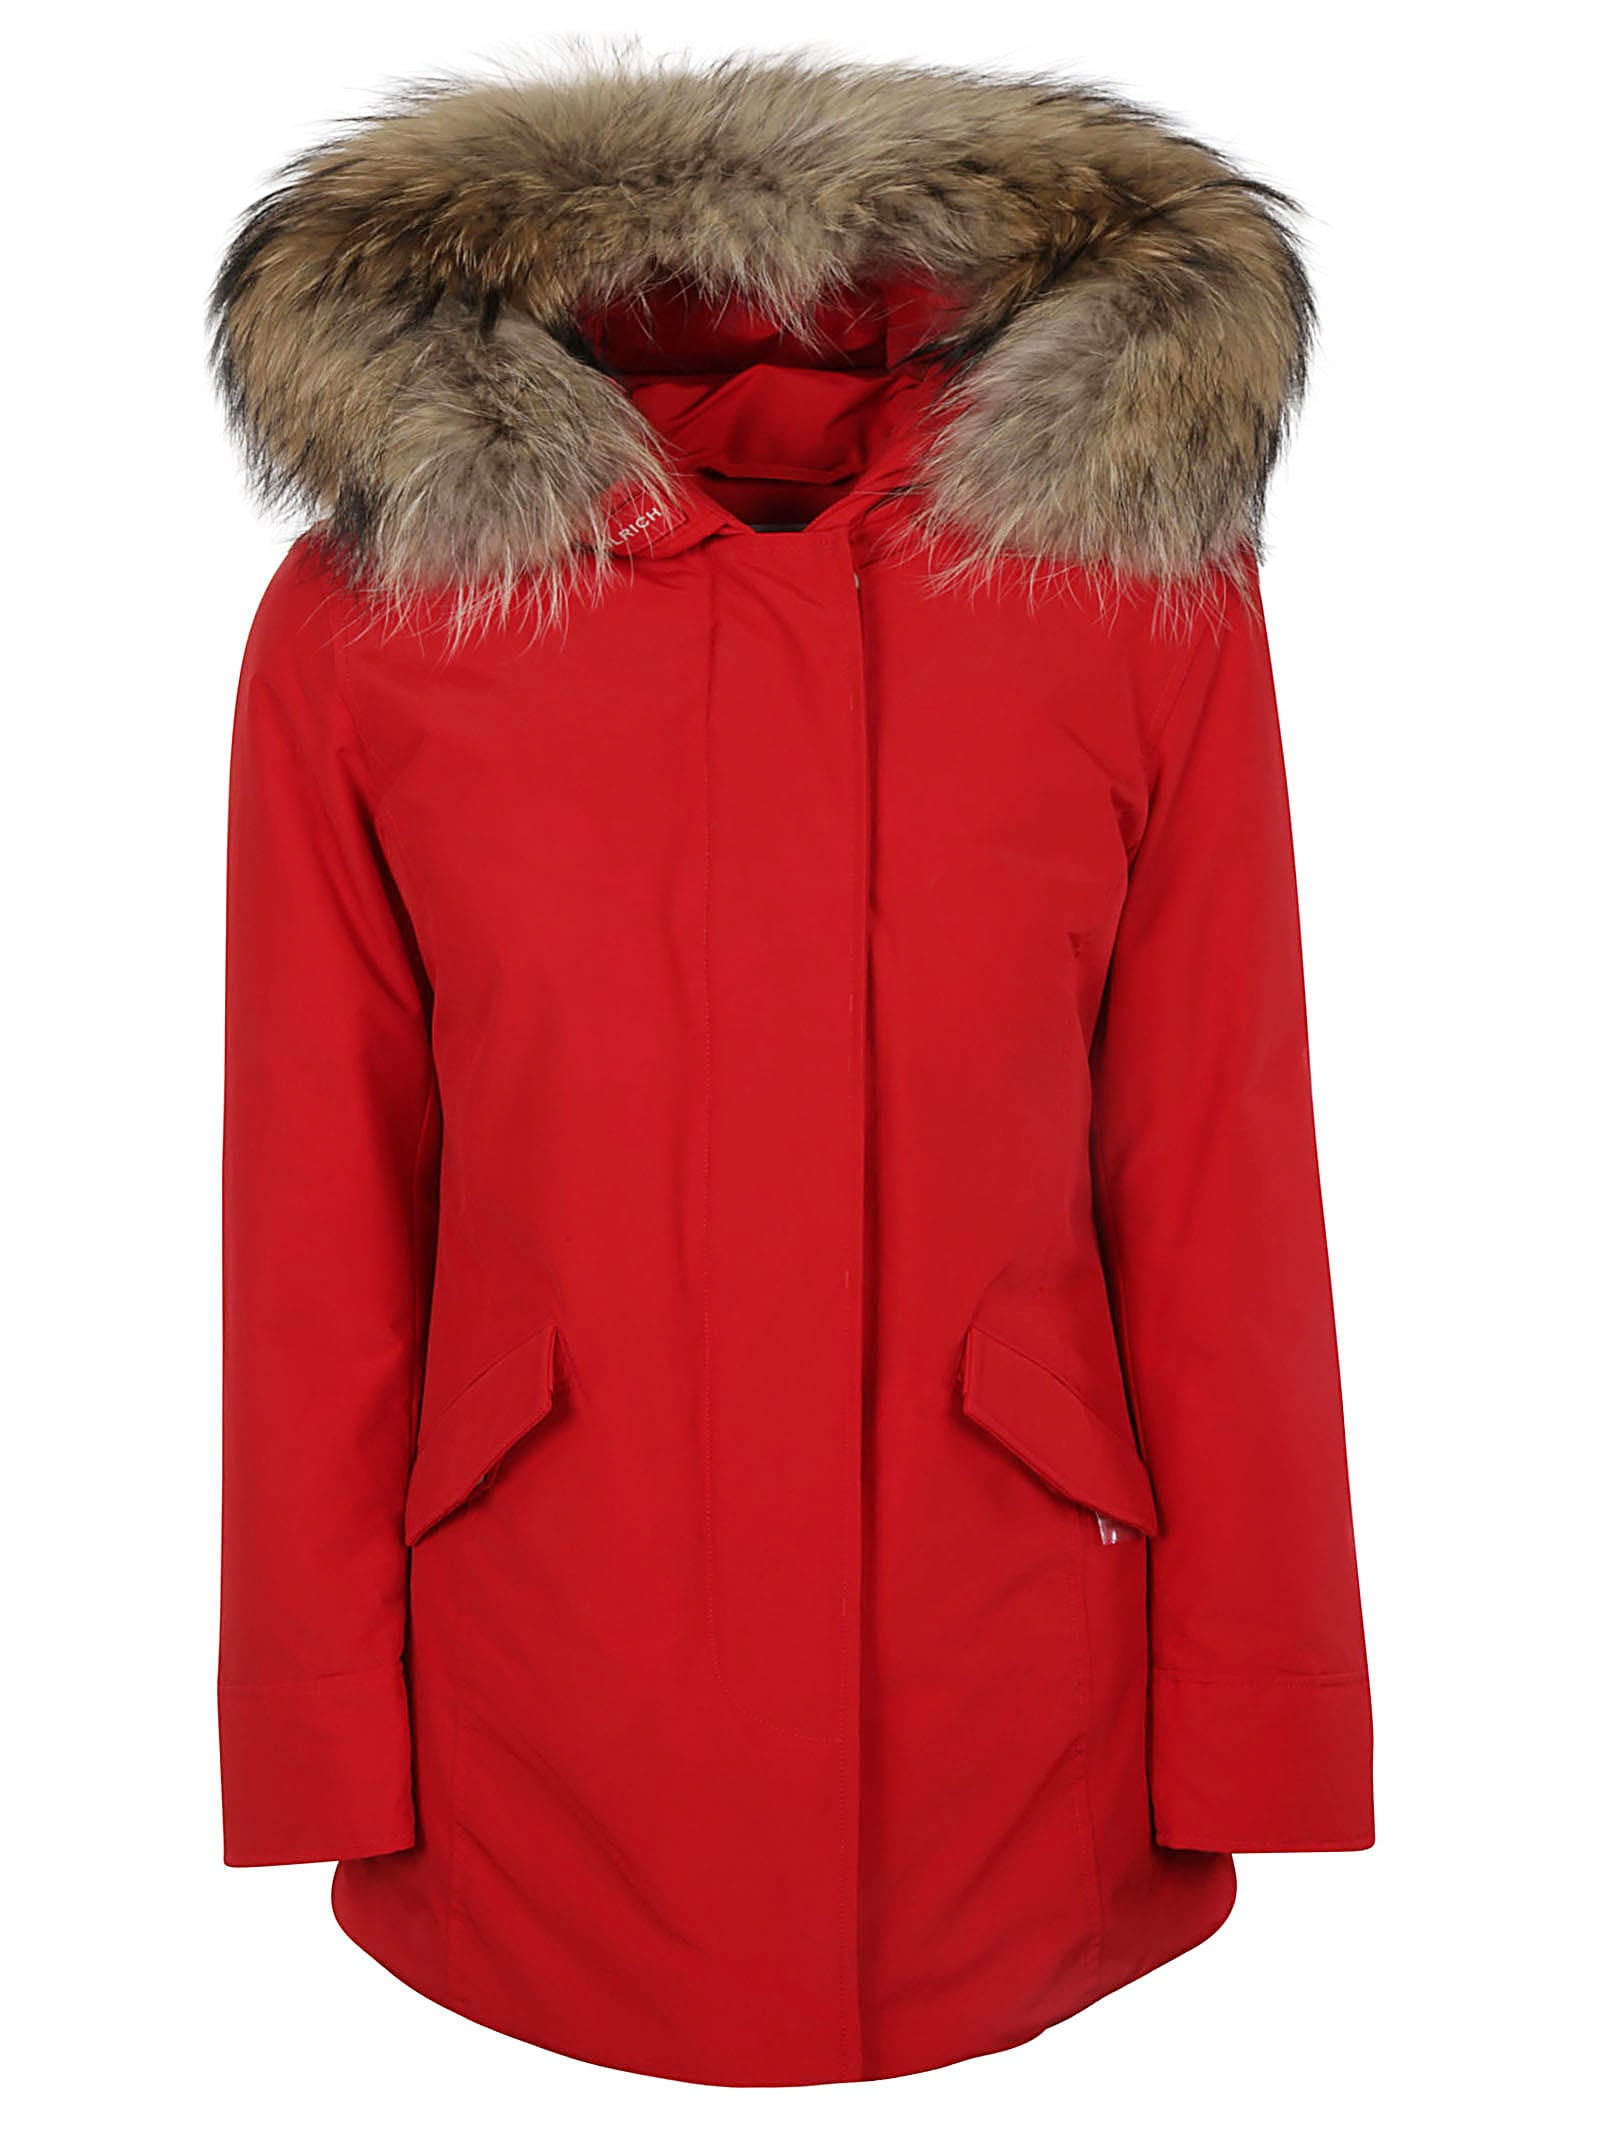 coupon code good texture amazon Woolrich Arctic Parka